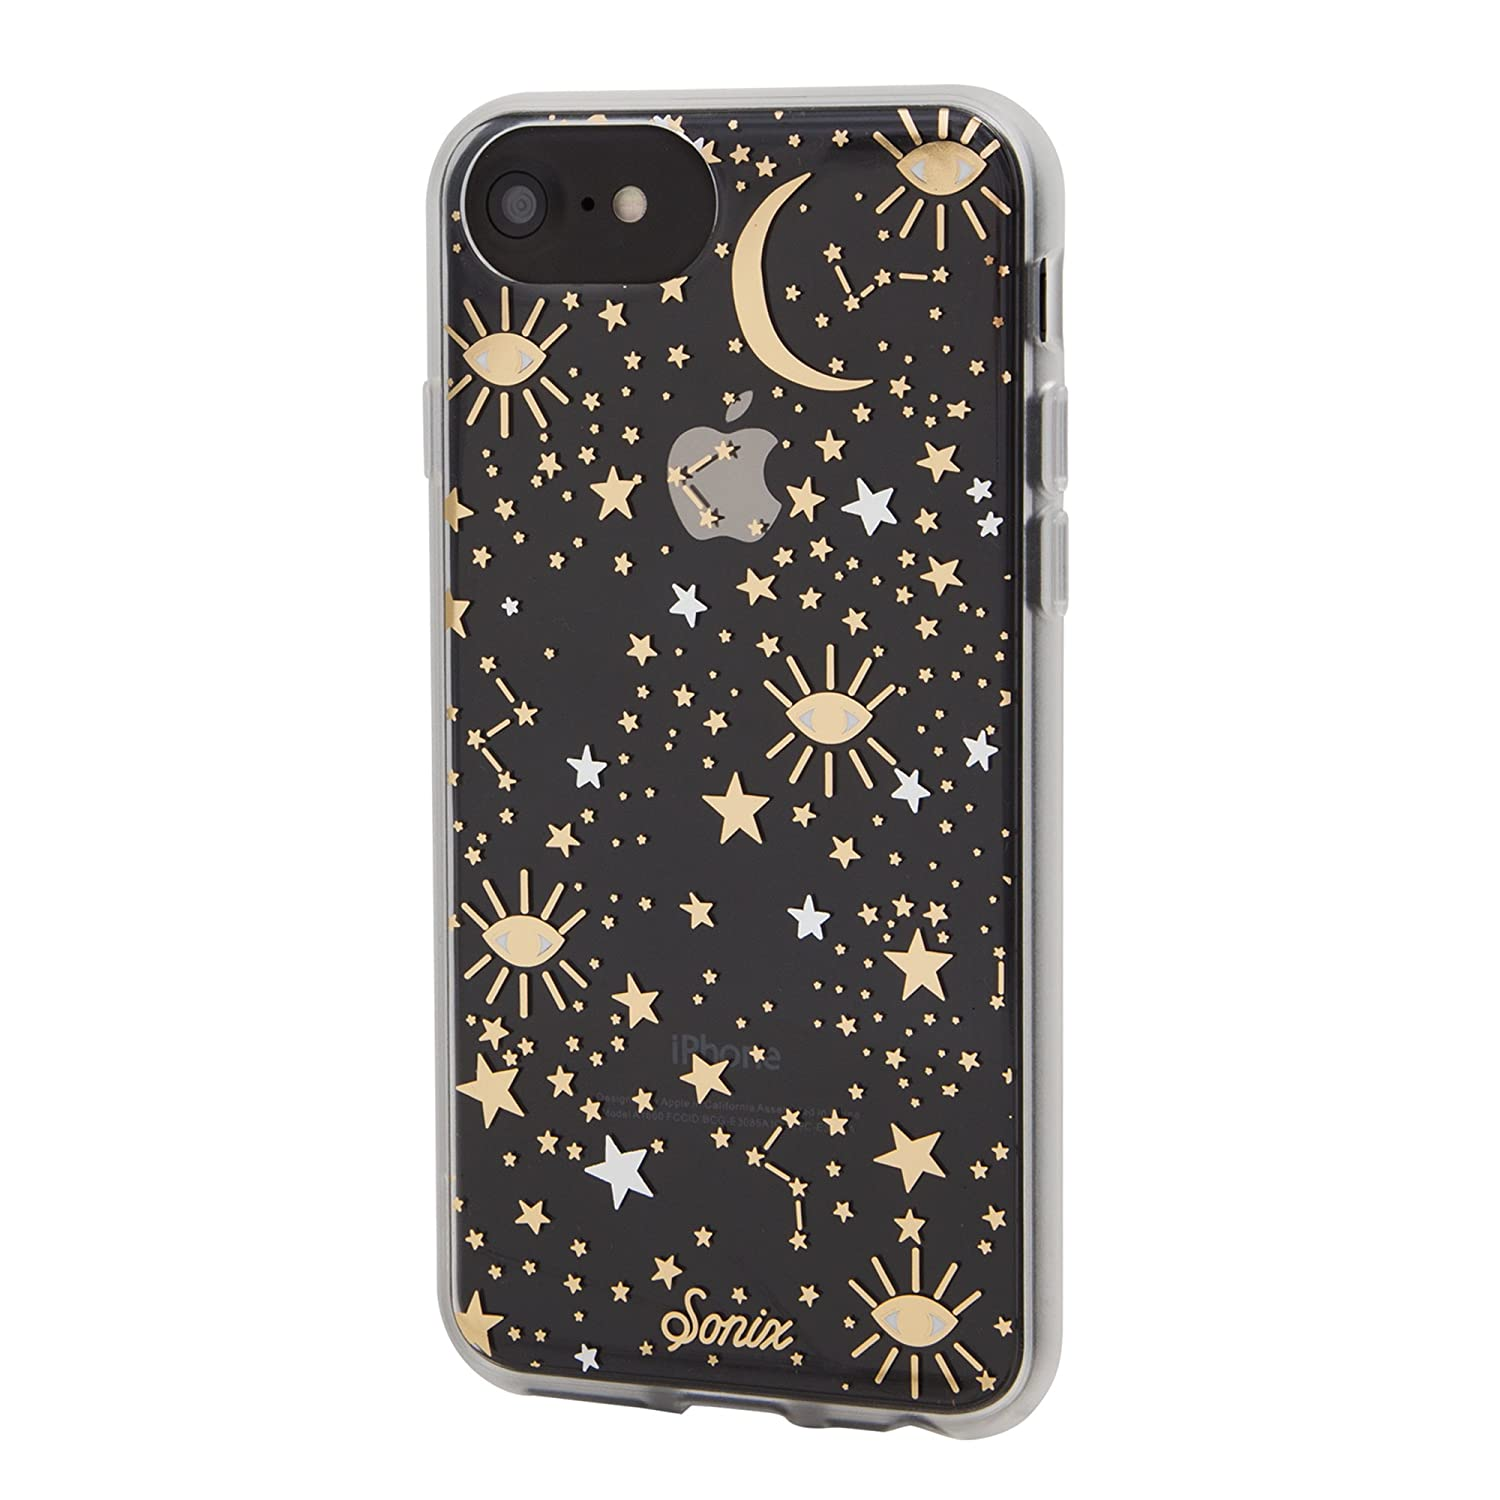 on sale 36718 a6bf5 Sonix Cosmic (Stars, Gold/Silver) Cell Phone Case [Military Drop Test  Certified] Sonix Clear Case for Apple iPhone 6/iPhone 6s/iPhone 7/iPhone 8